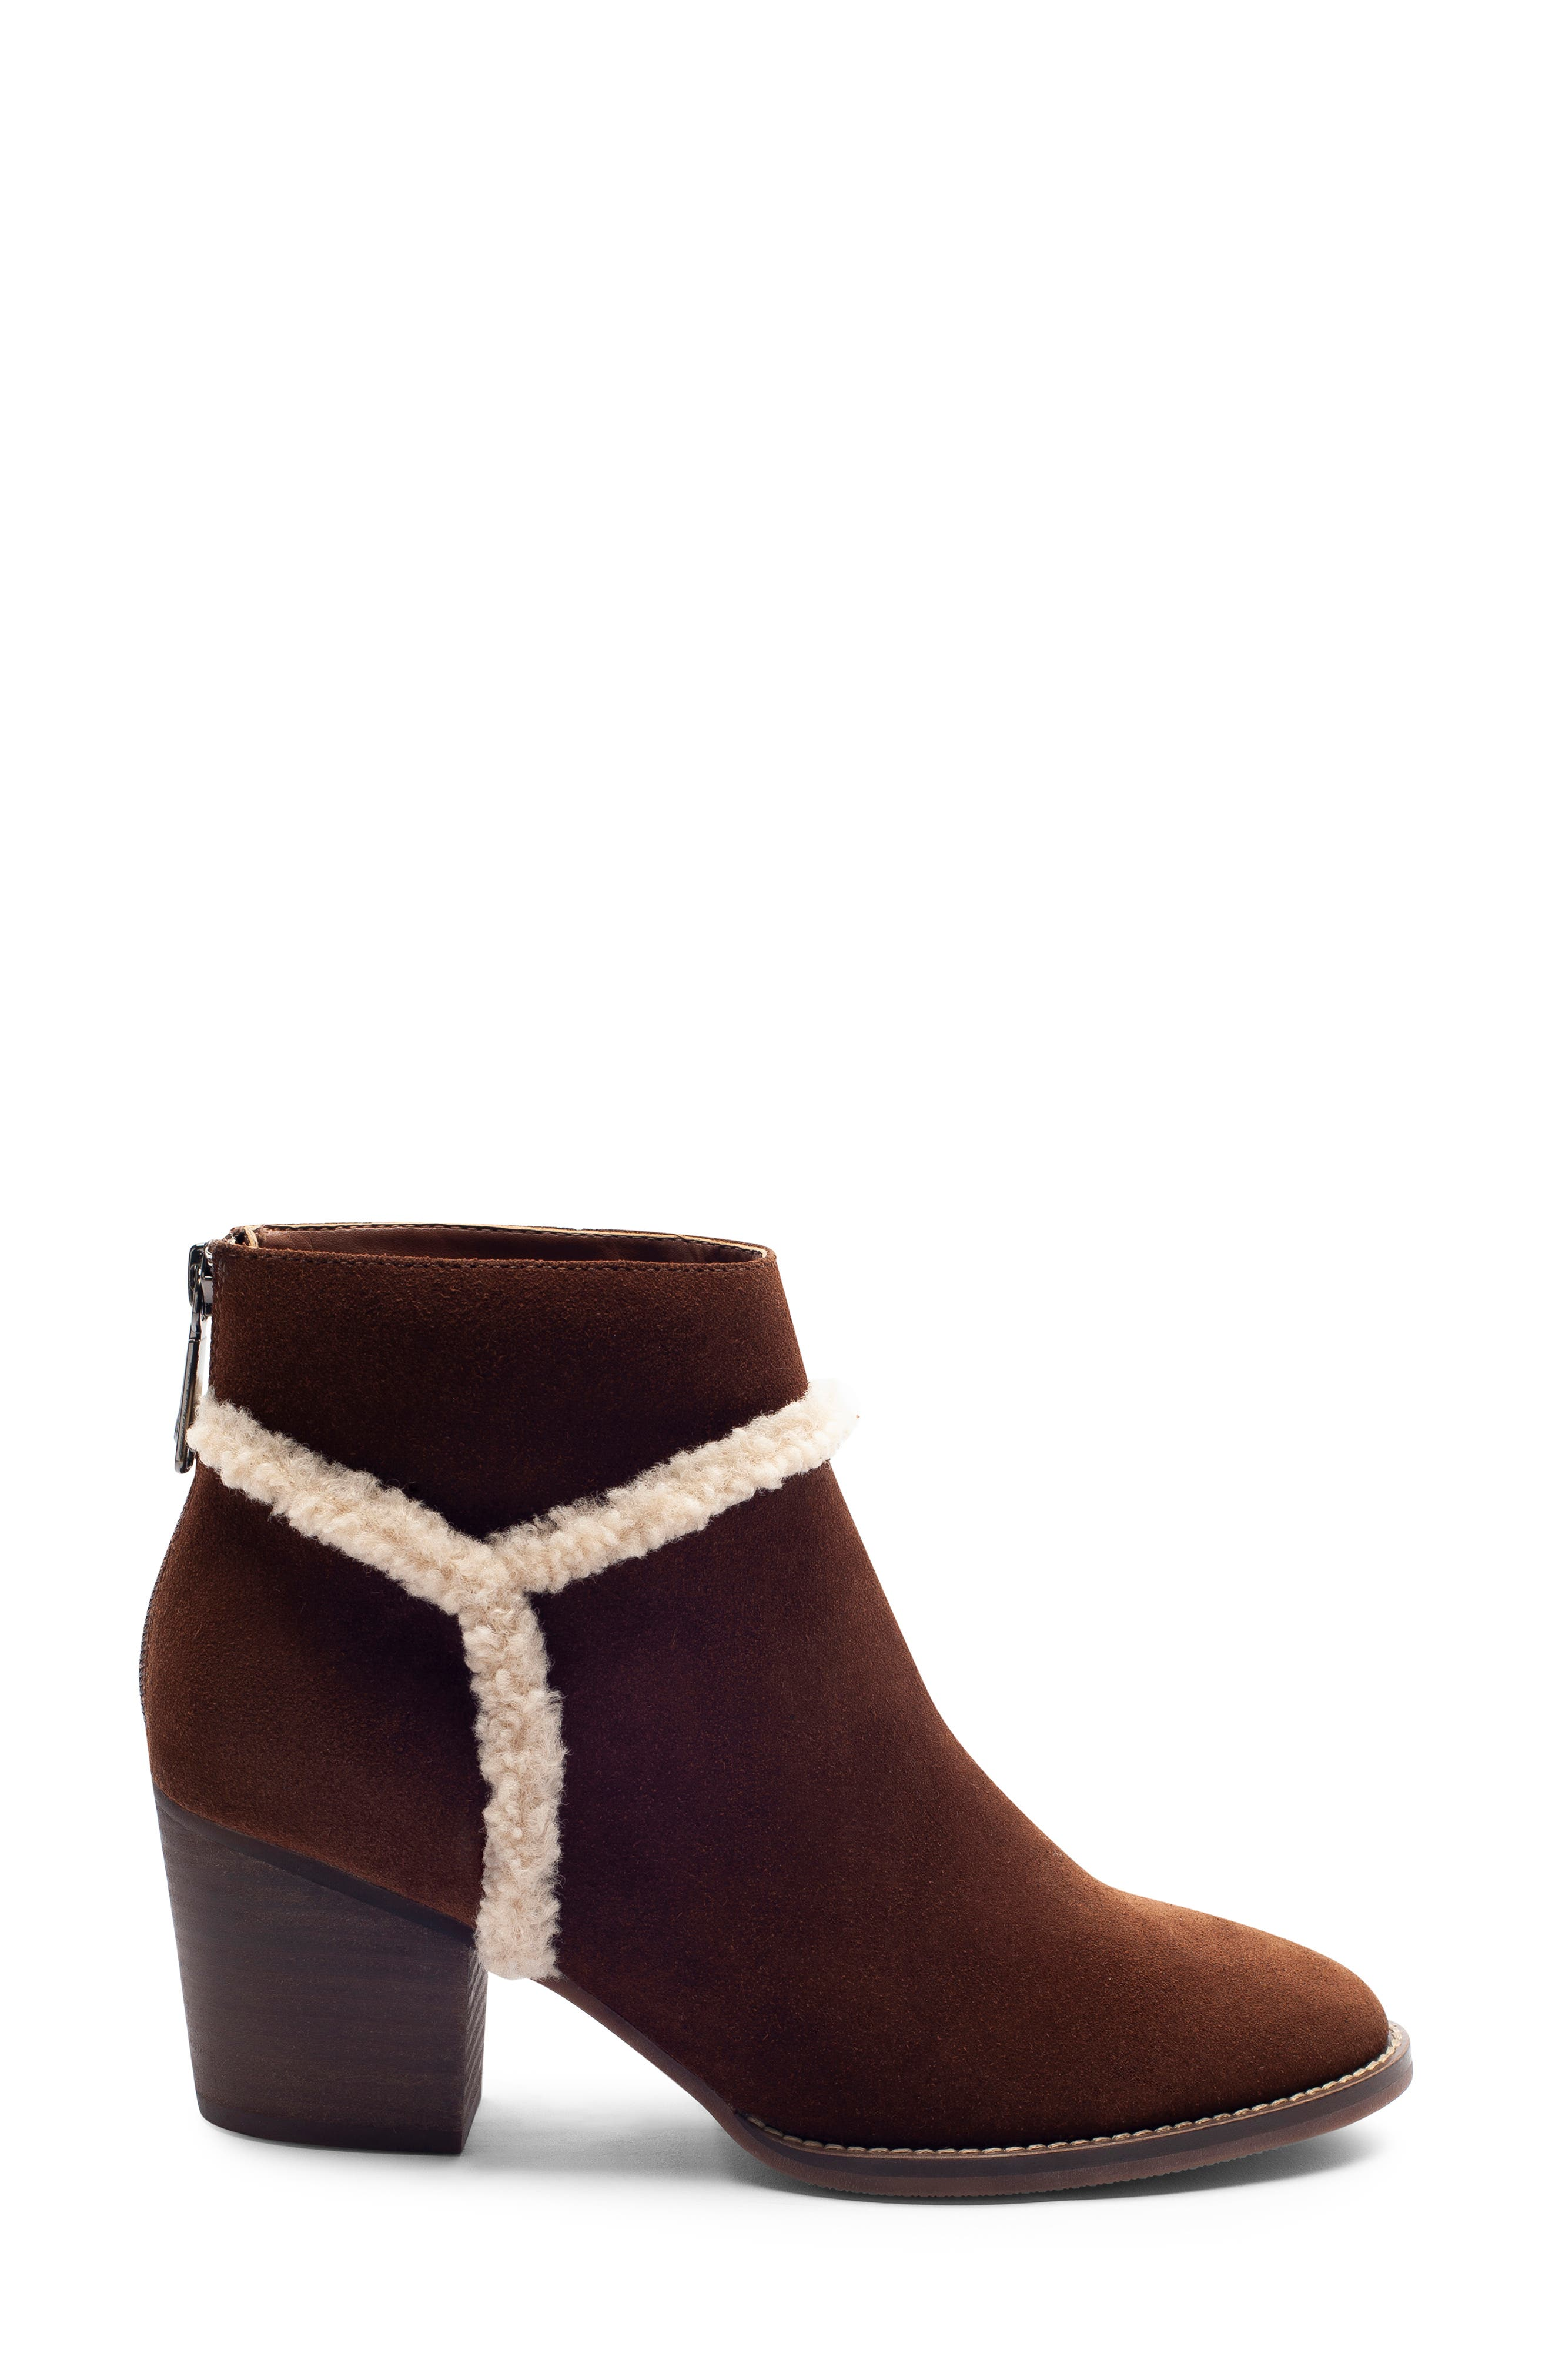 Netti Waterproof Bootie,                             Alternate thumbnail 3, color,                             CHESTNUT SUEDE